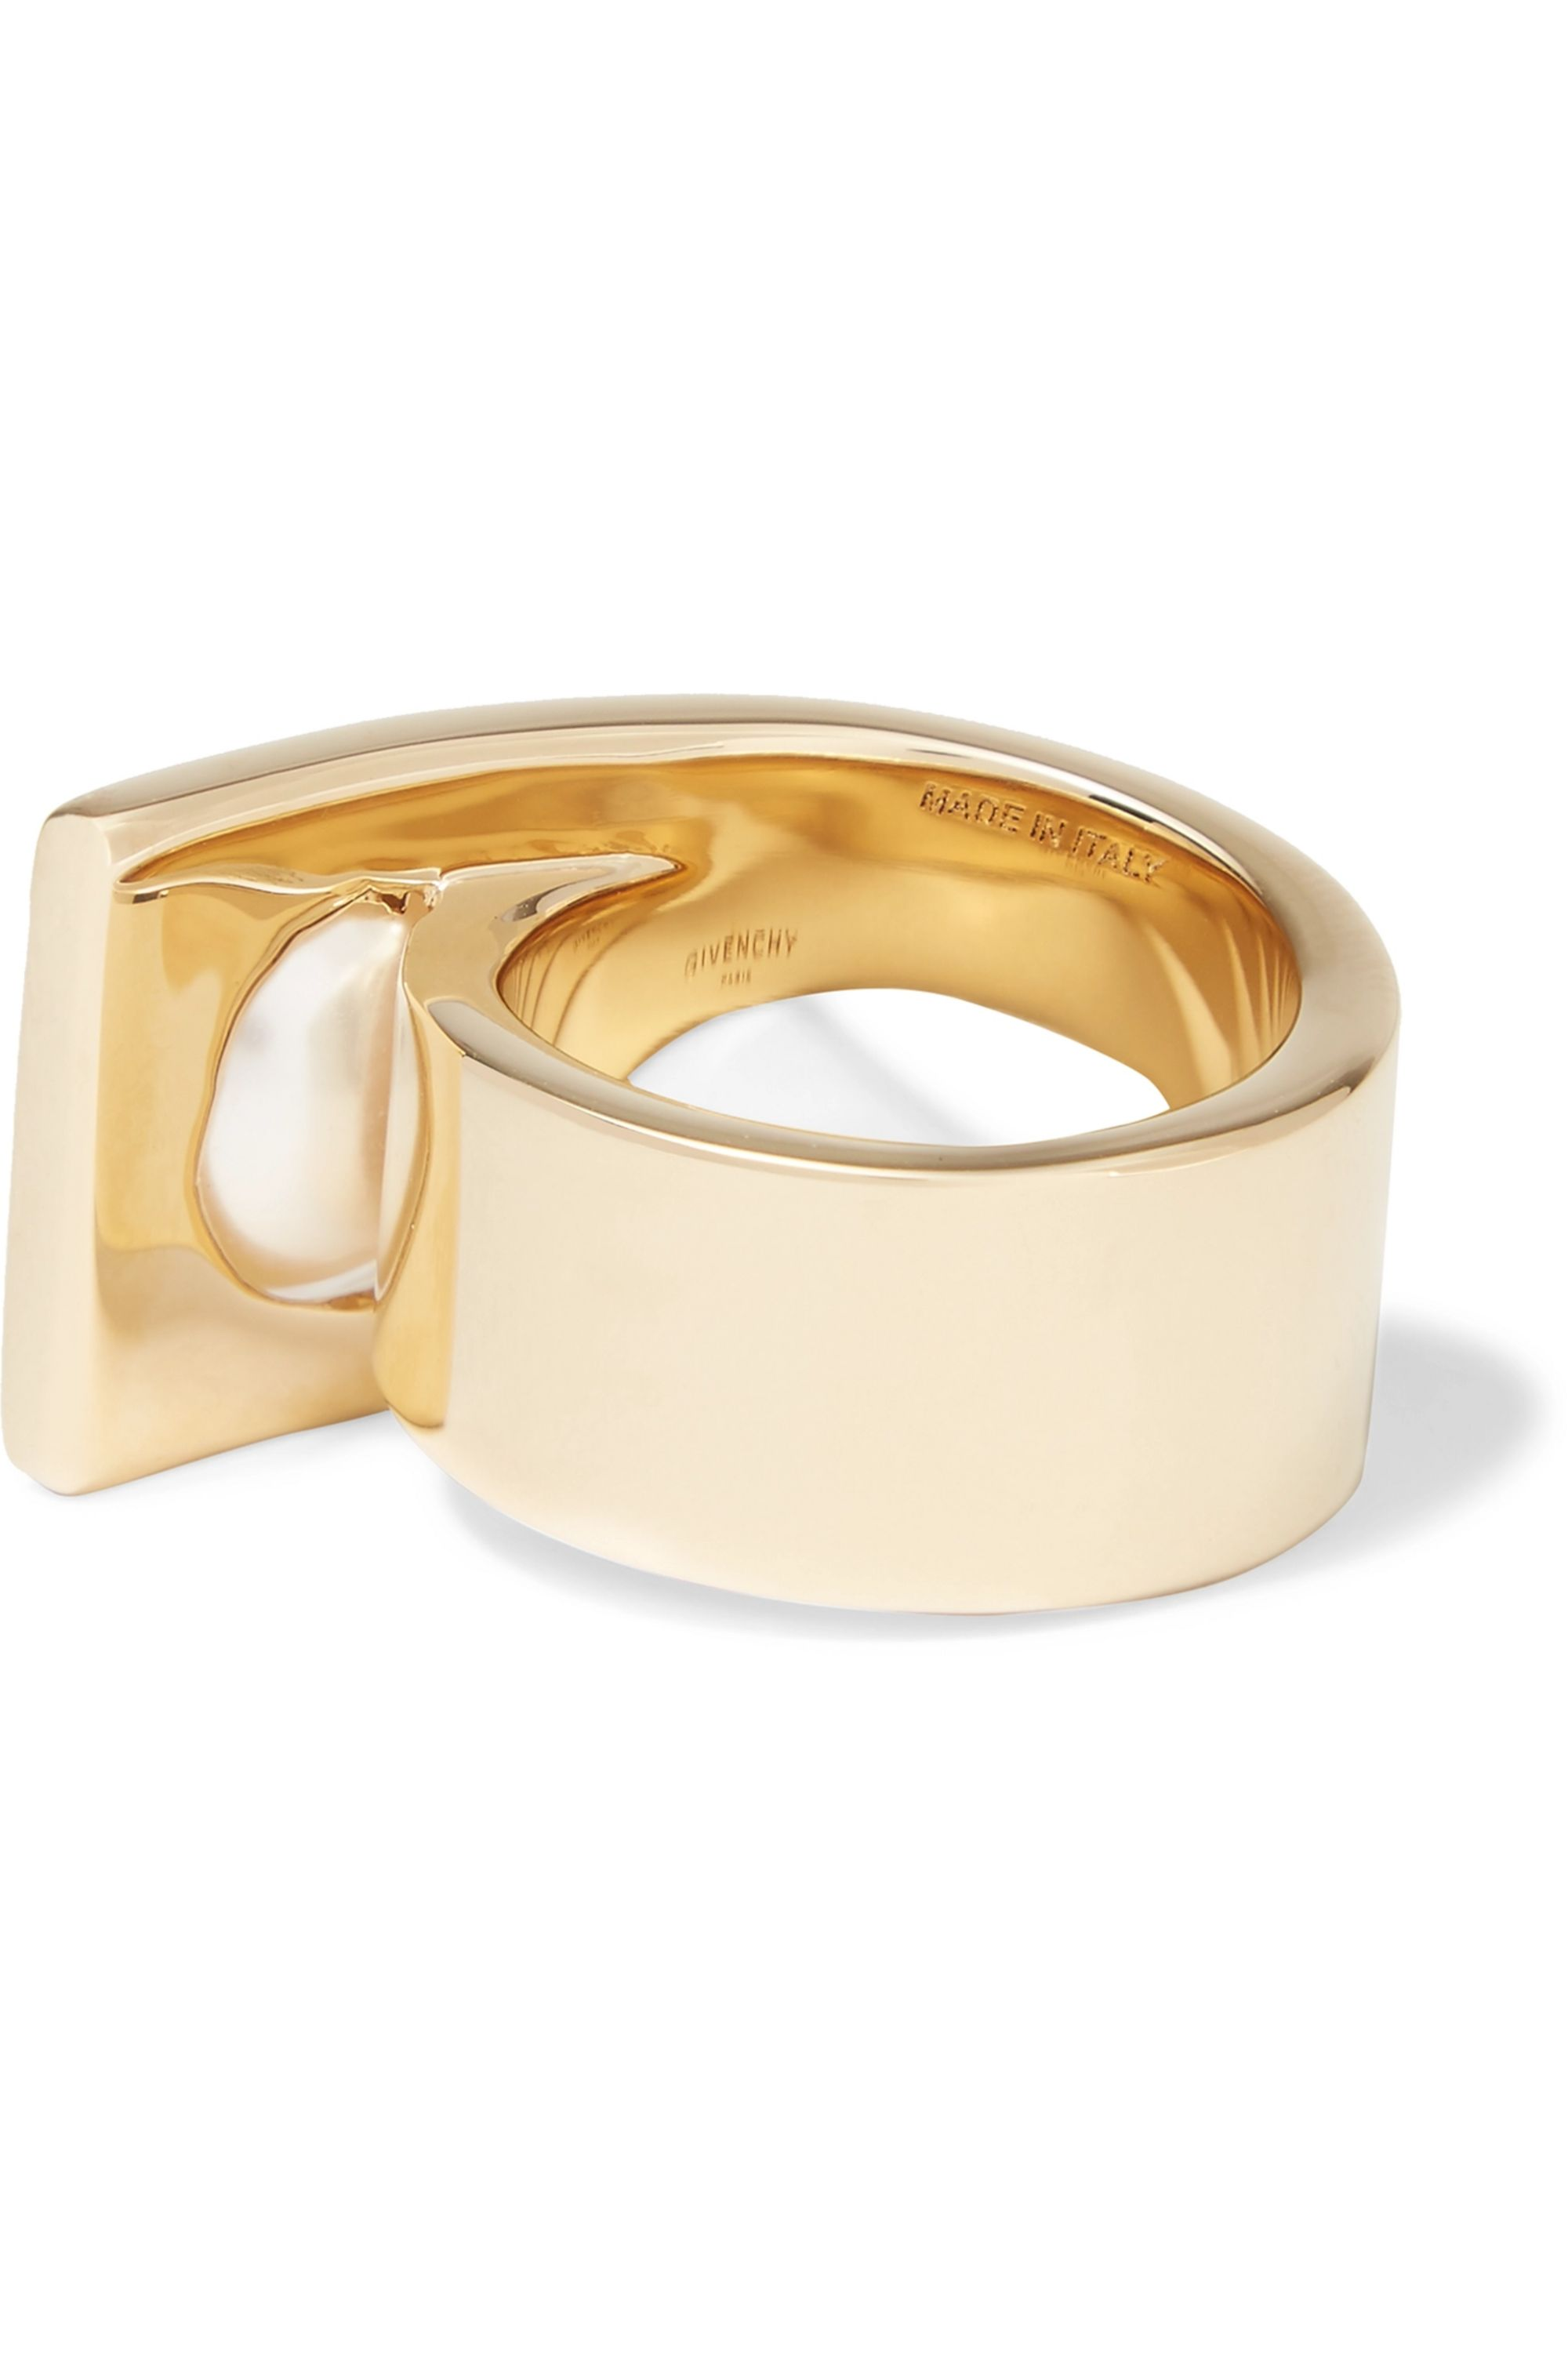 Givenchy Faux pearl ring in gold-tone brass